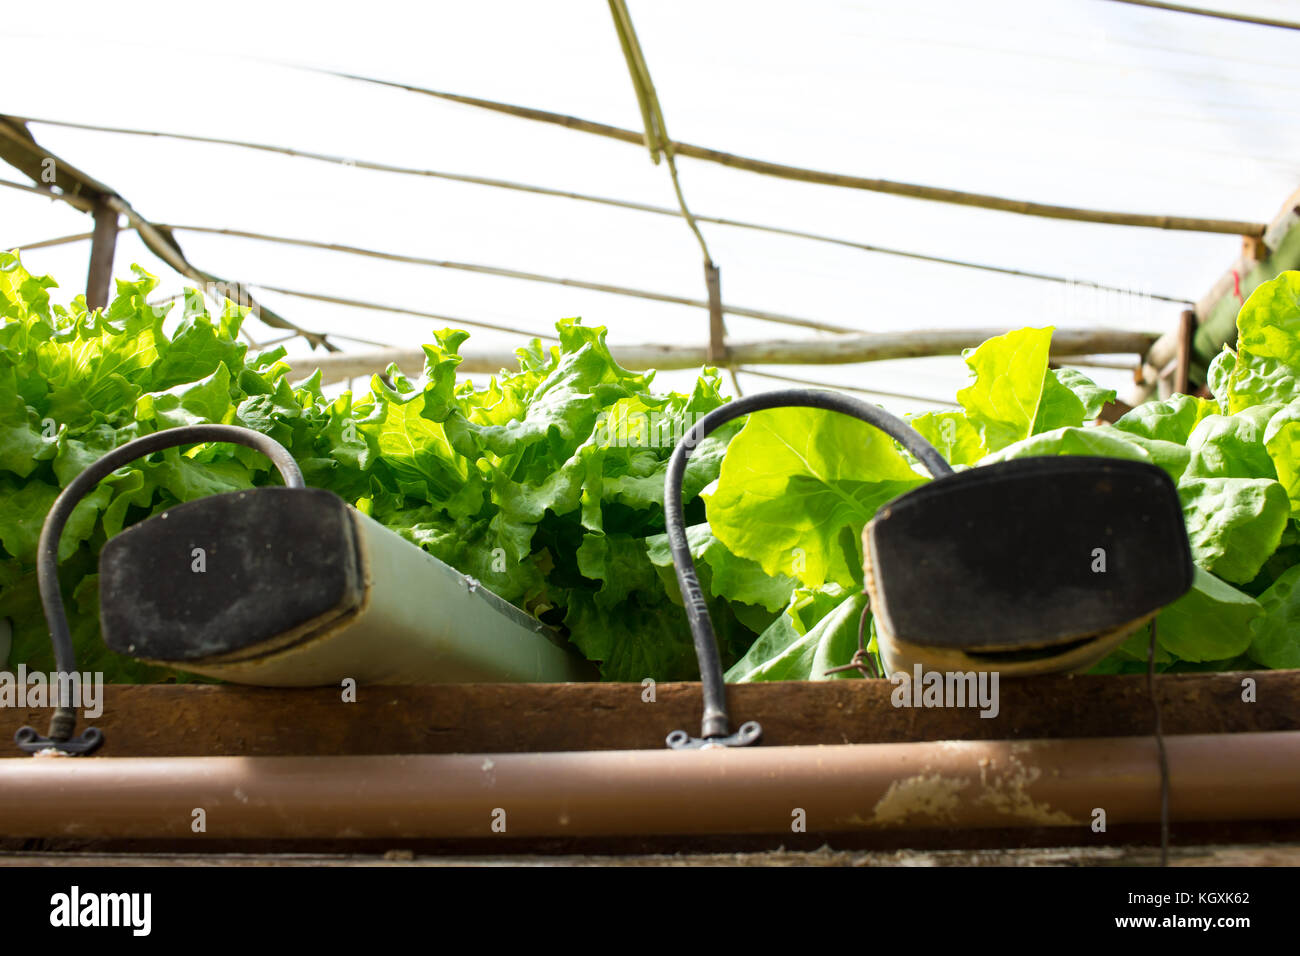 aquaponic stockfotos aquaponic bilder alamy. Black Bedroom Furniture Sets. Home Design Ideas